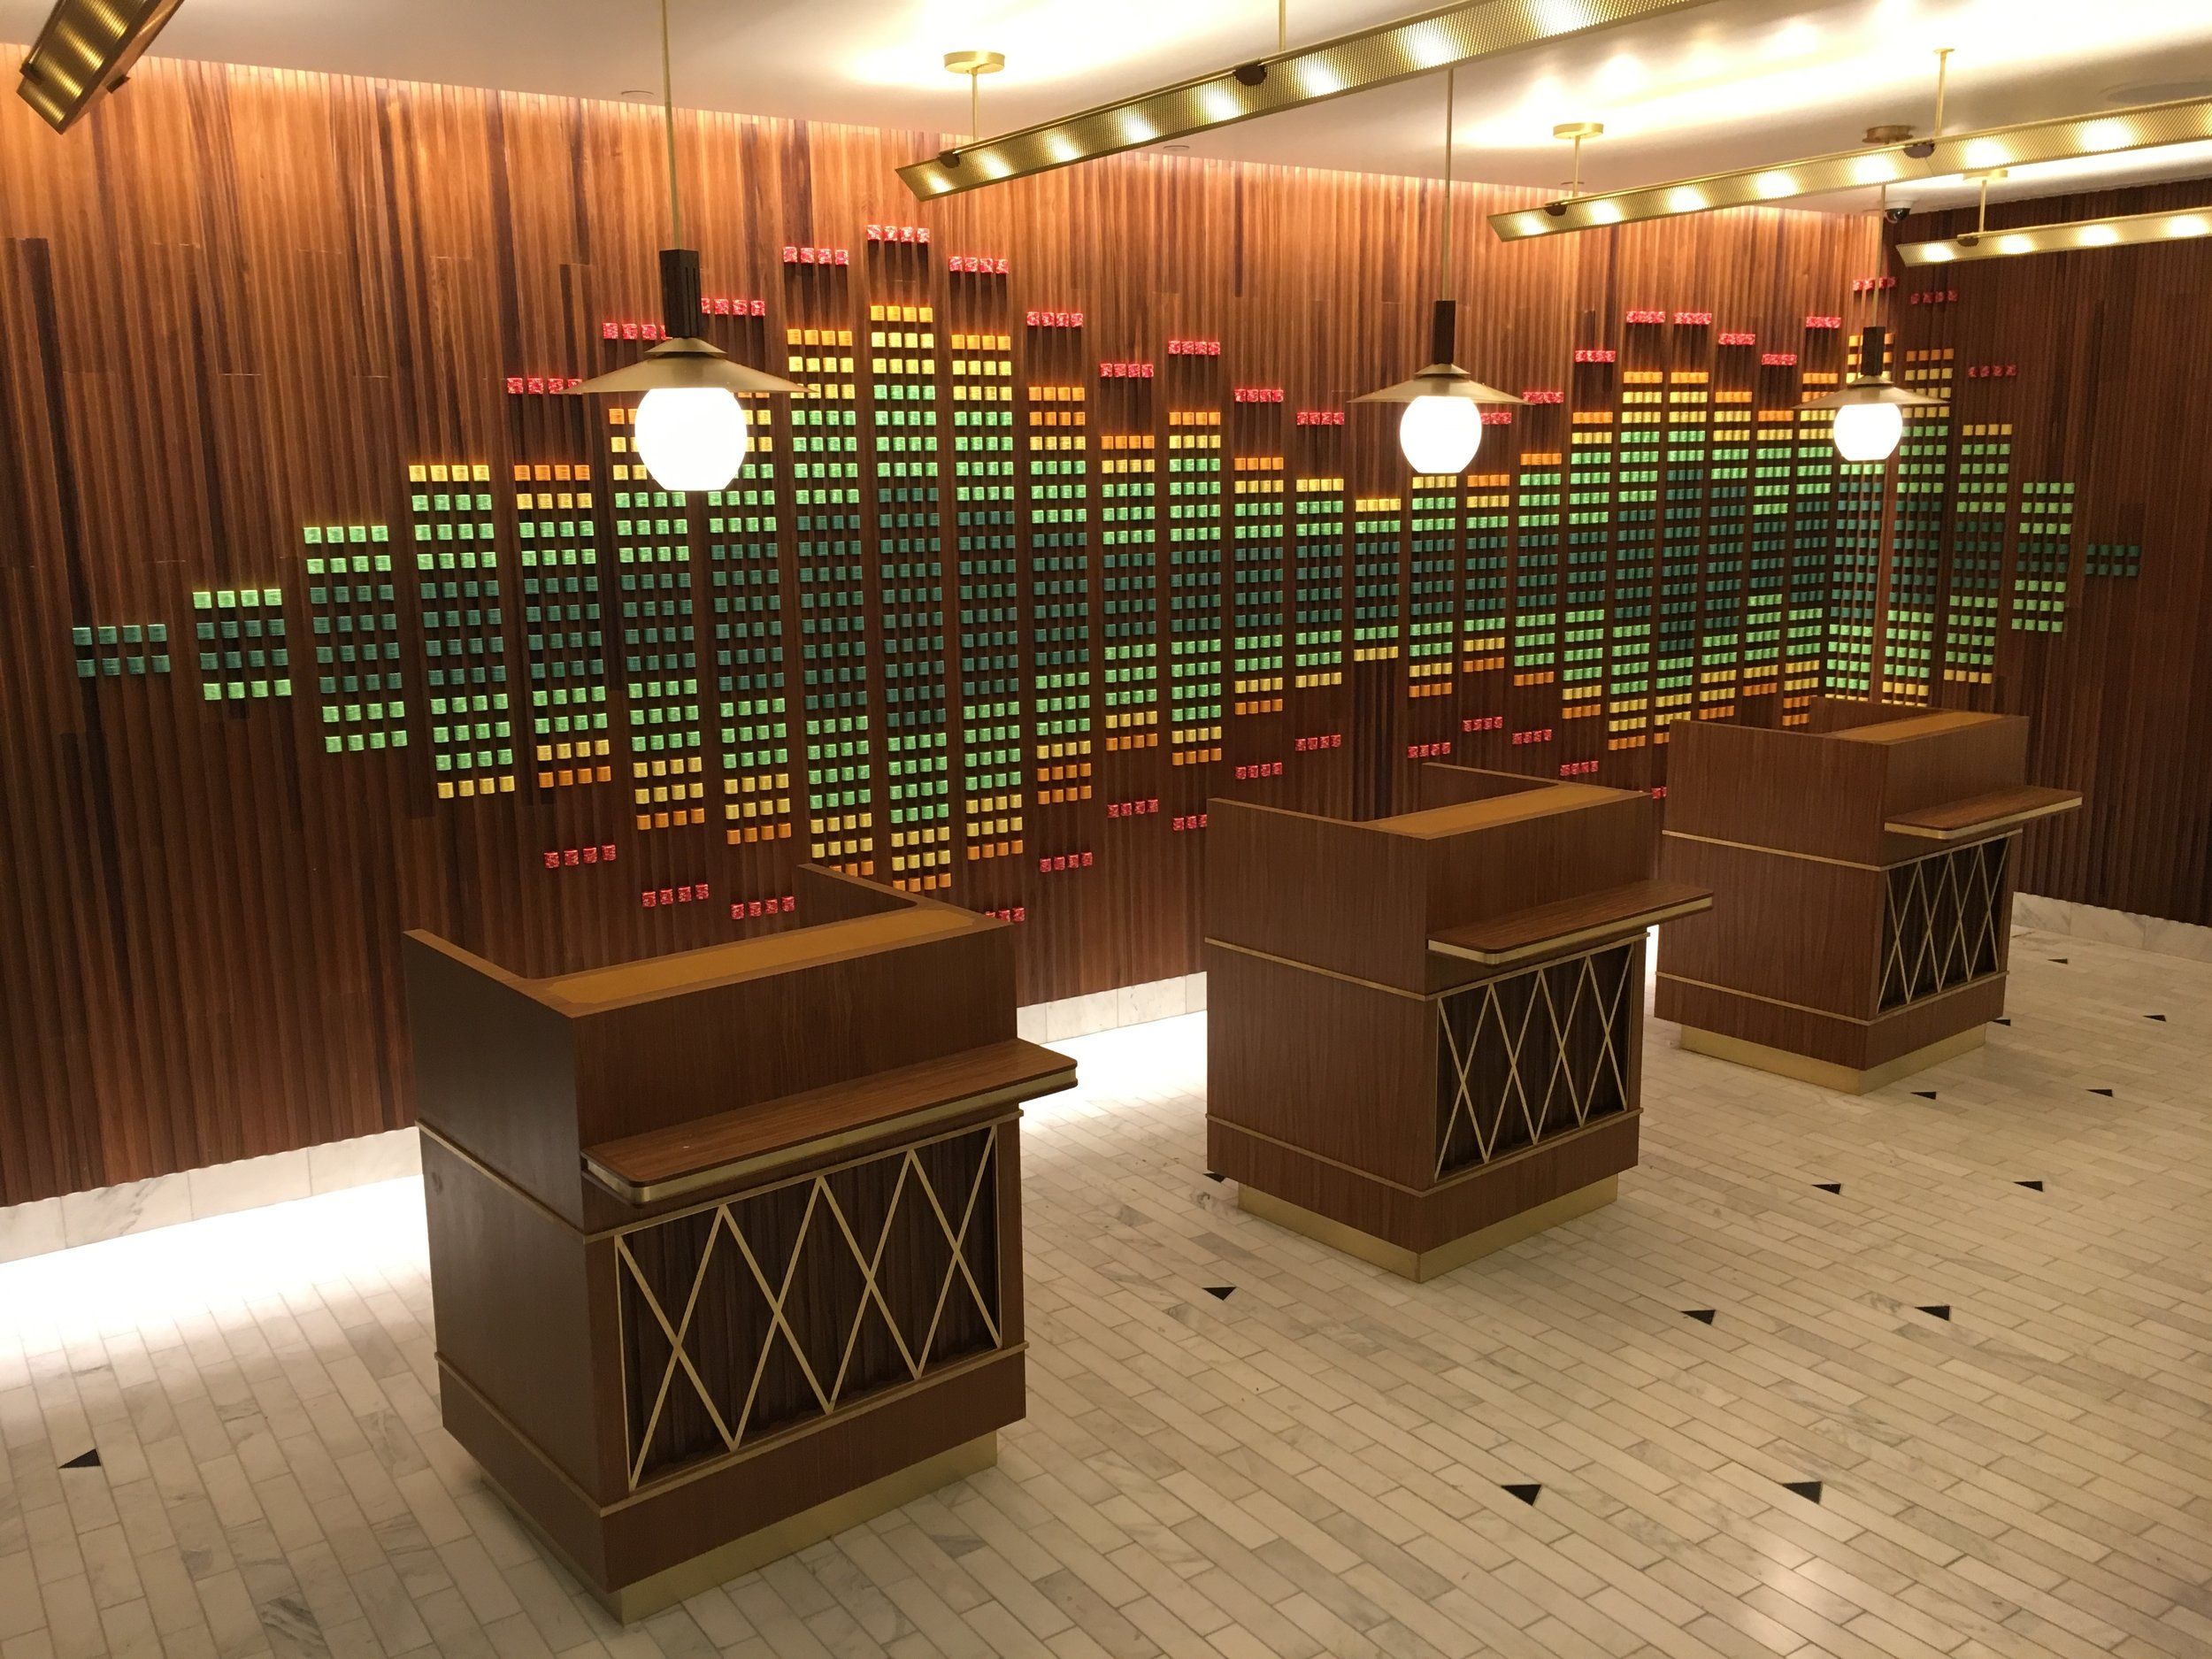 over 26,000 poker chips stacked into an equalizer bar design for the W hotel in Las Vegas. Whew. that was a beast.